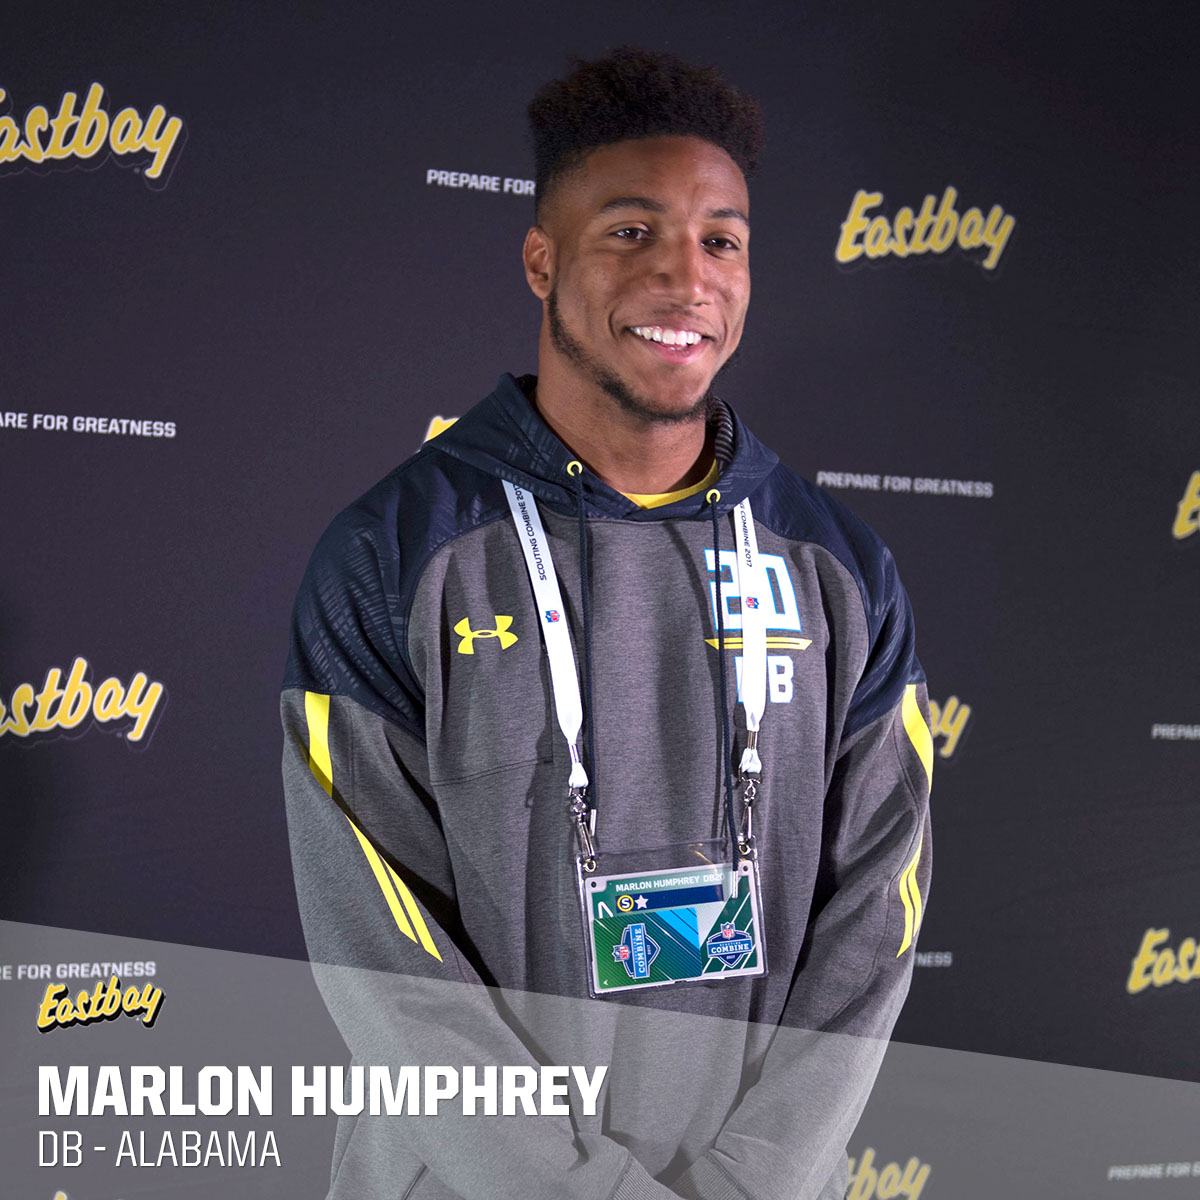 Live From Indy: Marlon Humphrey